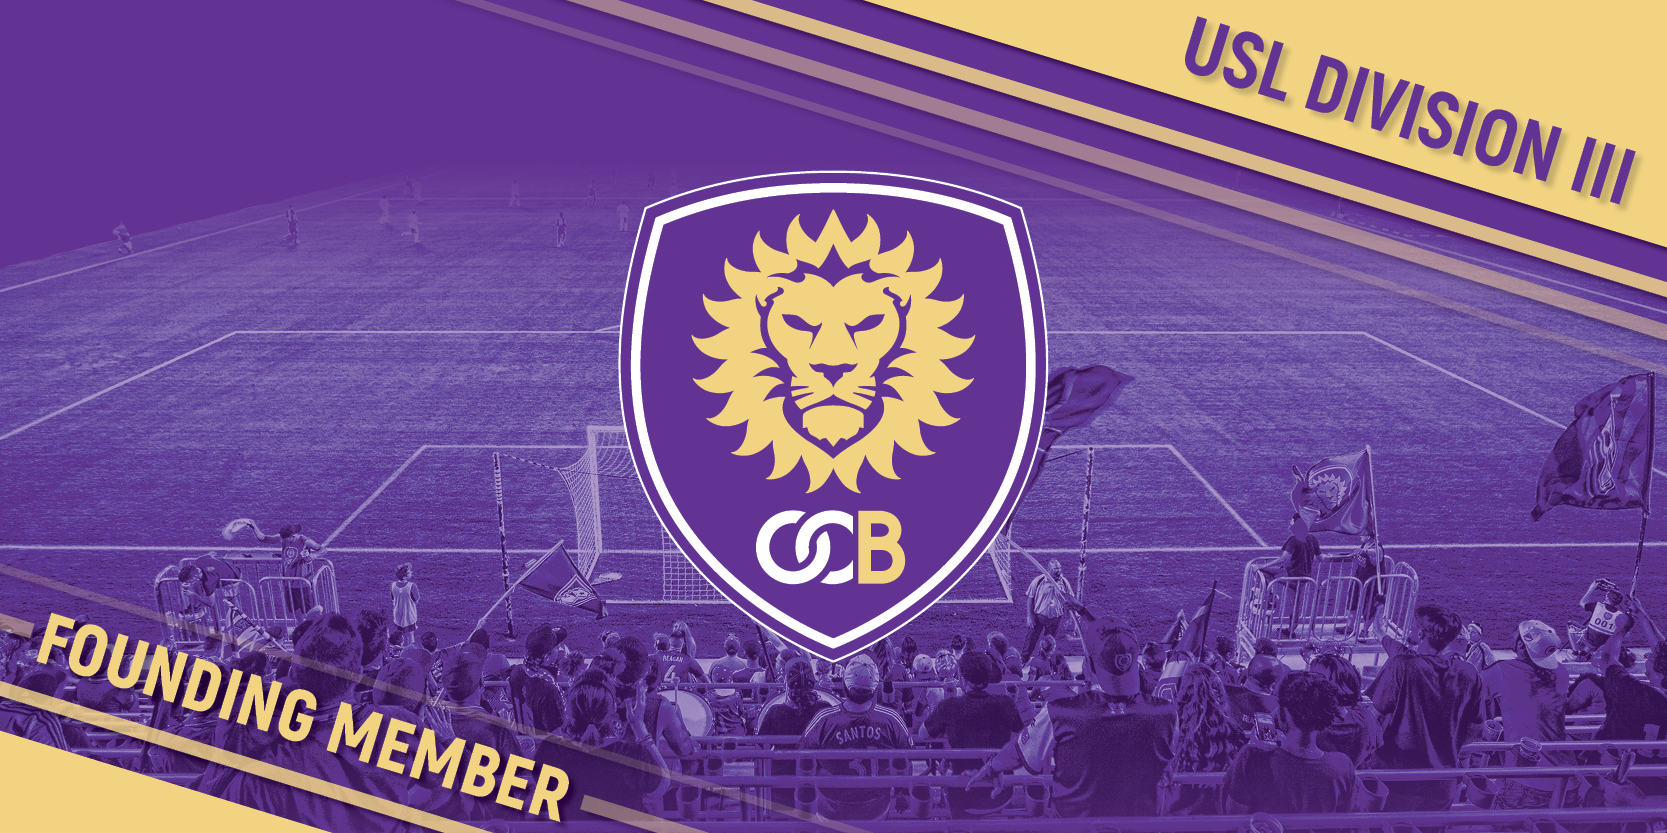 Orlando City B Becomes Usl Division Iii Founding Member Perfect Fit Sc Was One Of The Members At Start Usls Modern Era In 2011 Club Won Two Titles Level